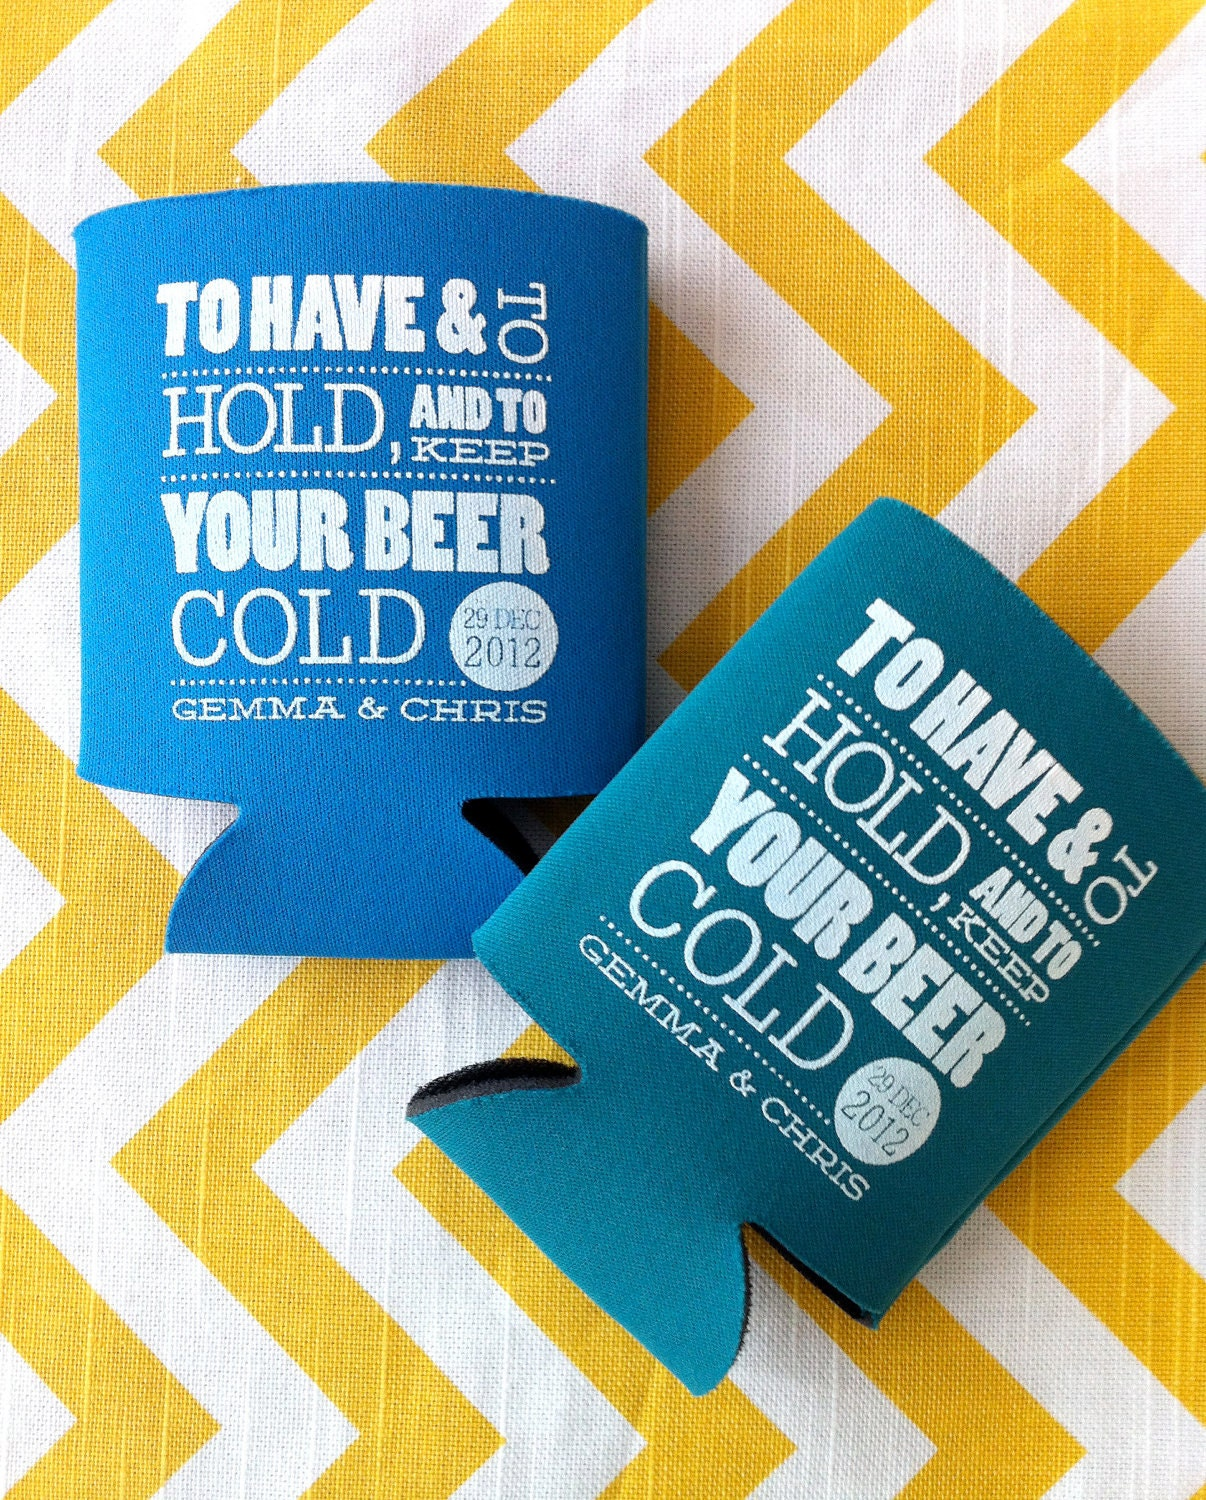 To have and to hold and keep your b eer cold wedding koozies